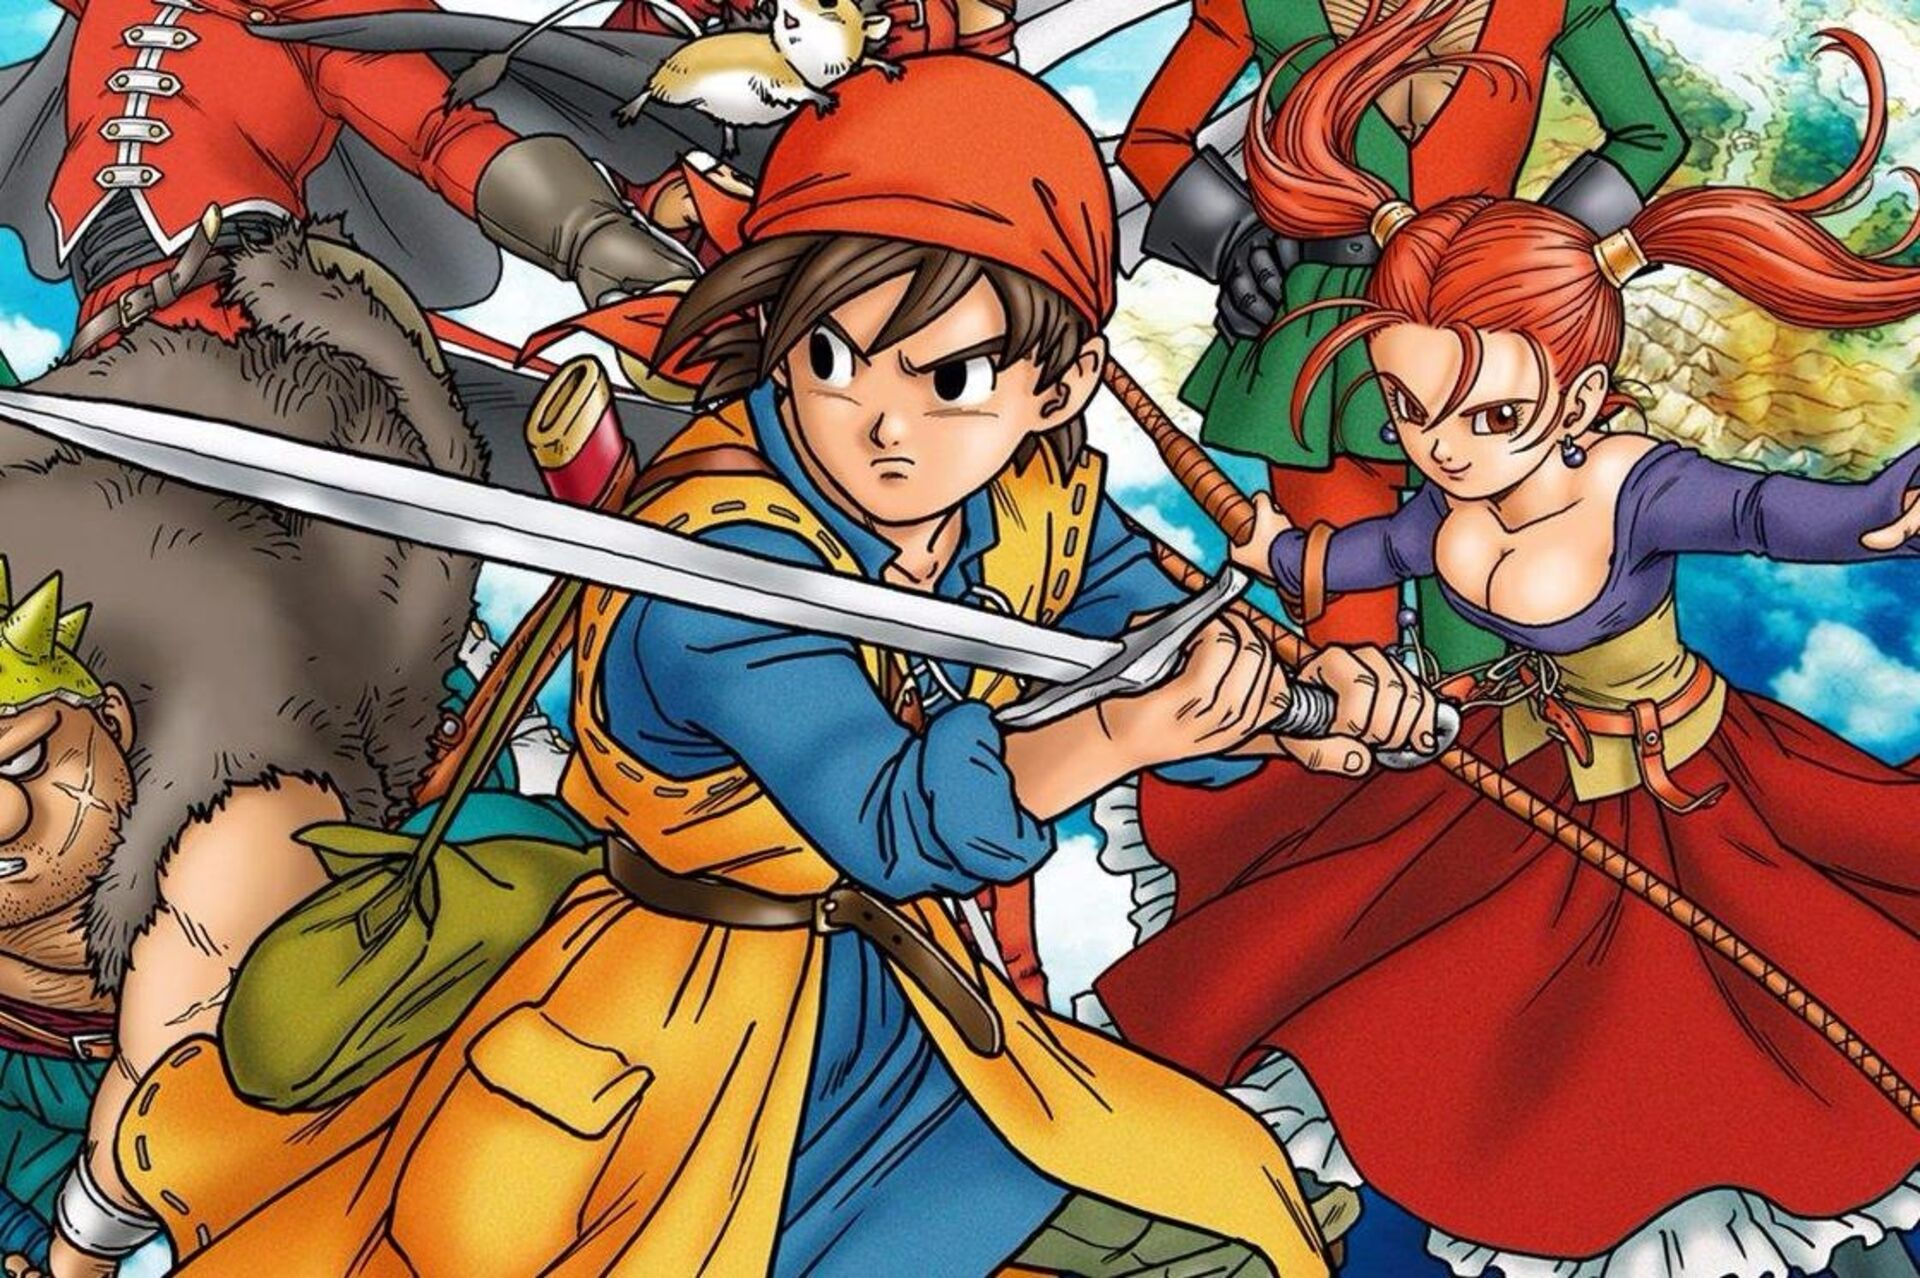 Dragon Quest 8 3DS remake out January 2017 • Eurogamer net